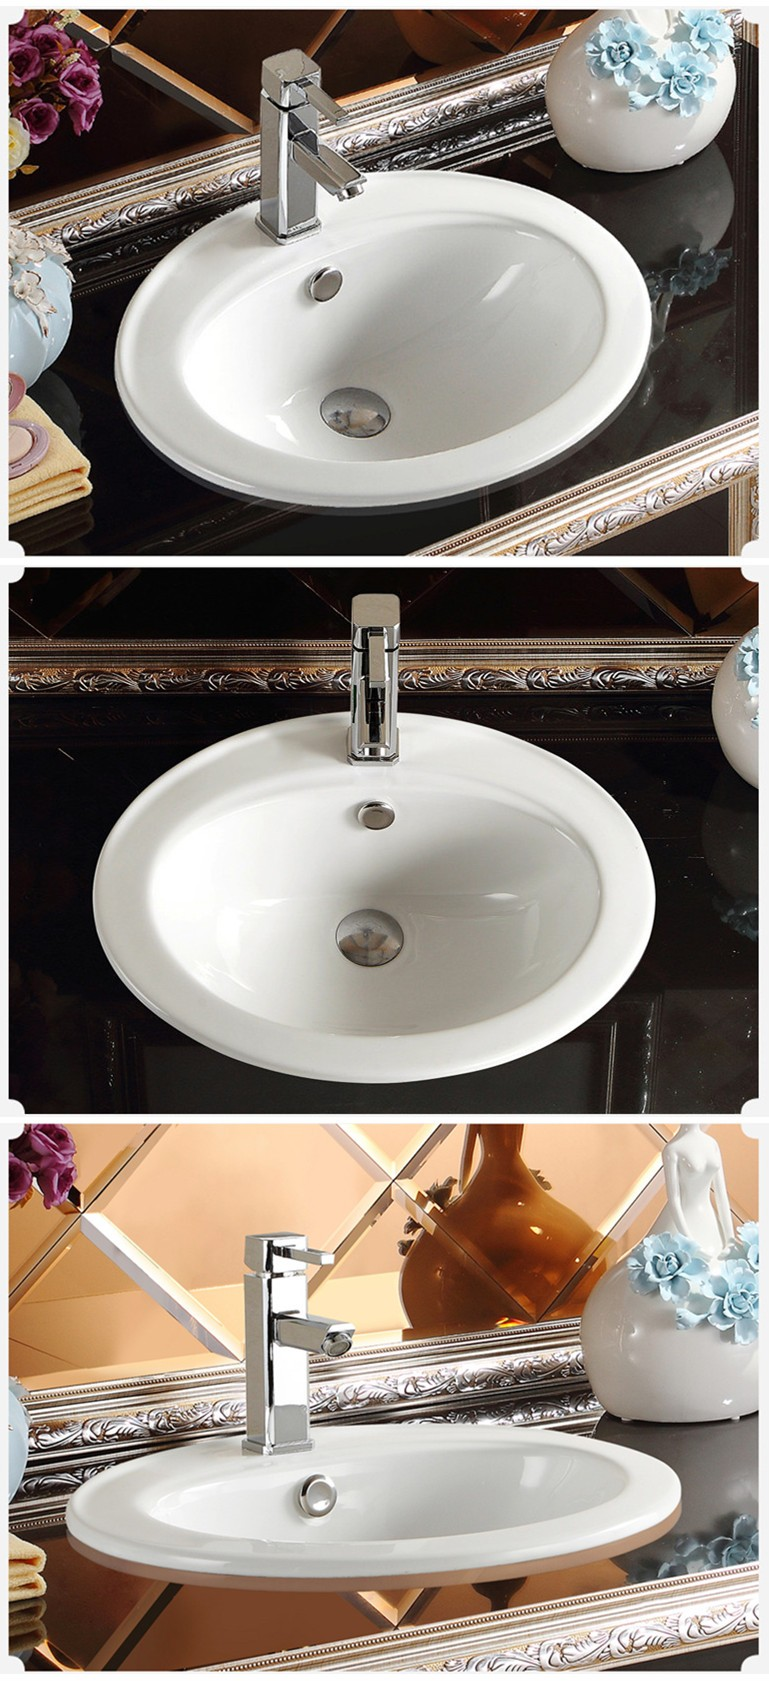 Import from china to bolivia bathroom wash basin models price